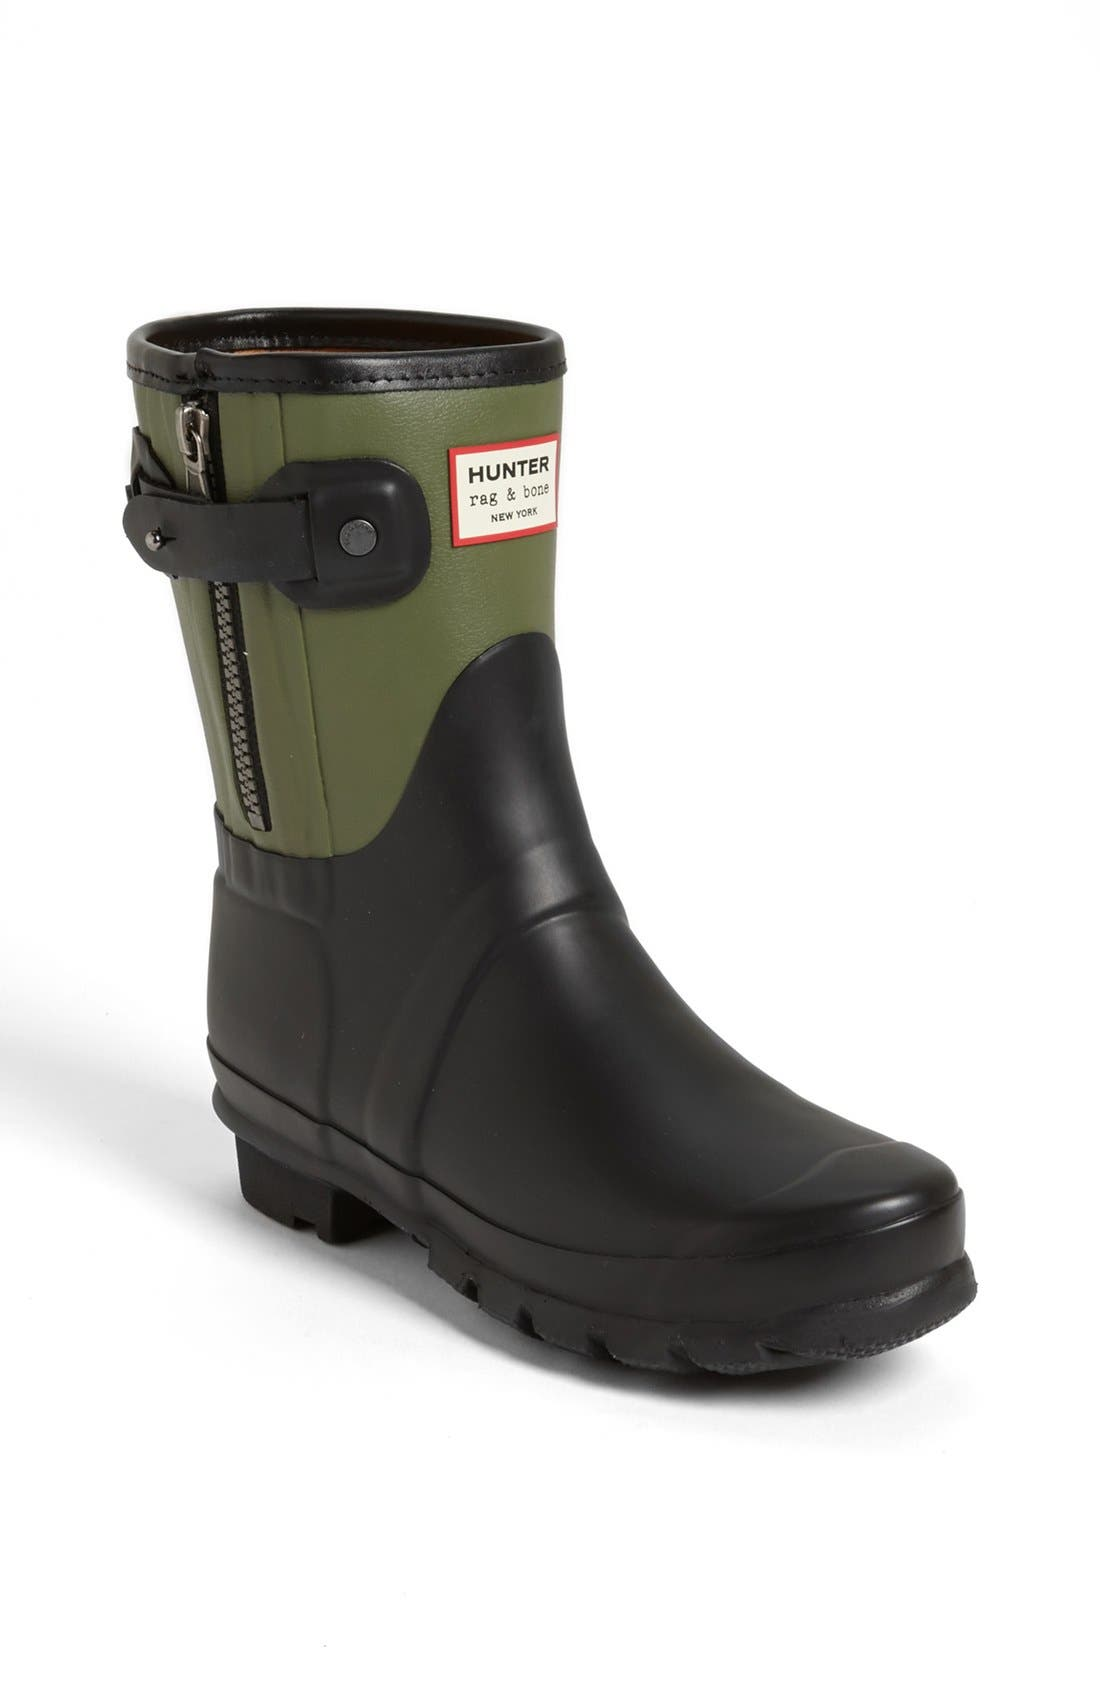 Main Image - Hunter for rag & bone Short Rain Boot (Women)